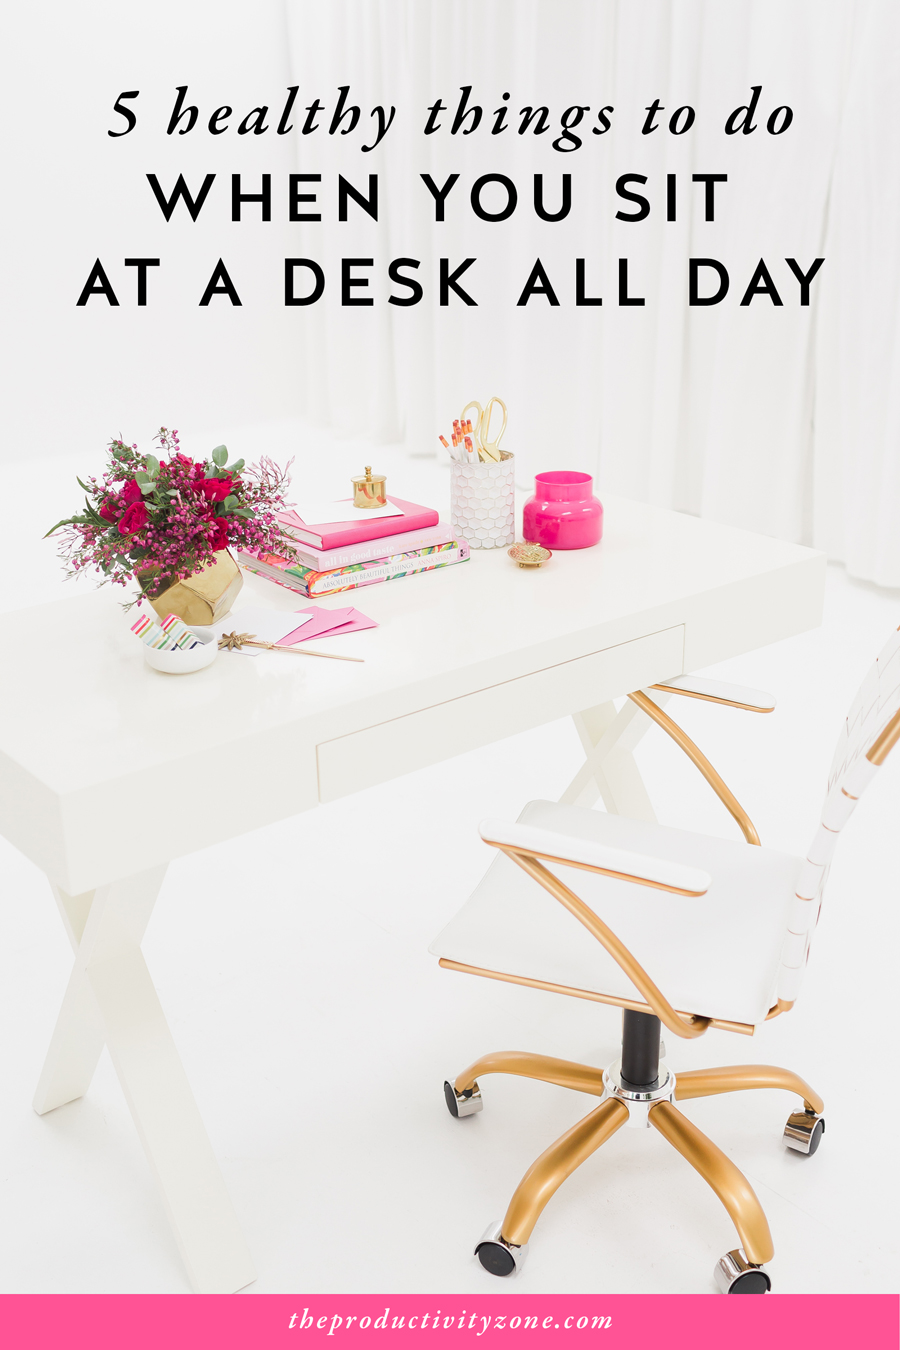 Small, healthy changes can and will better your female entrepreneur lifestyle if you practice them consistently for a long period of time. Over on The Productivity Zone, I suggest 5 healthy things you can do when you sit at a desk all day (and not one of them involves kale)!!